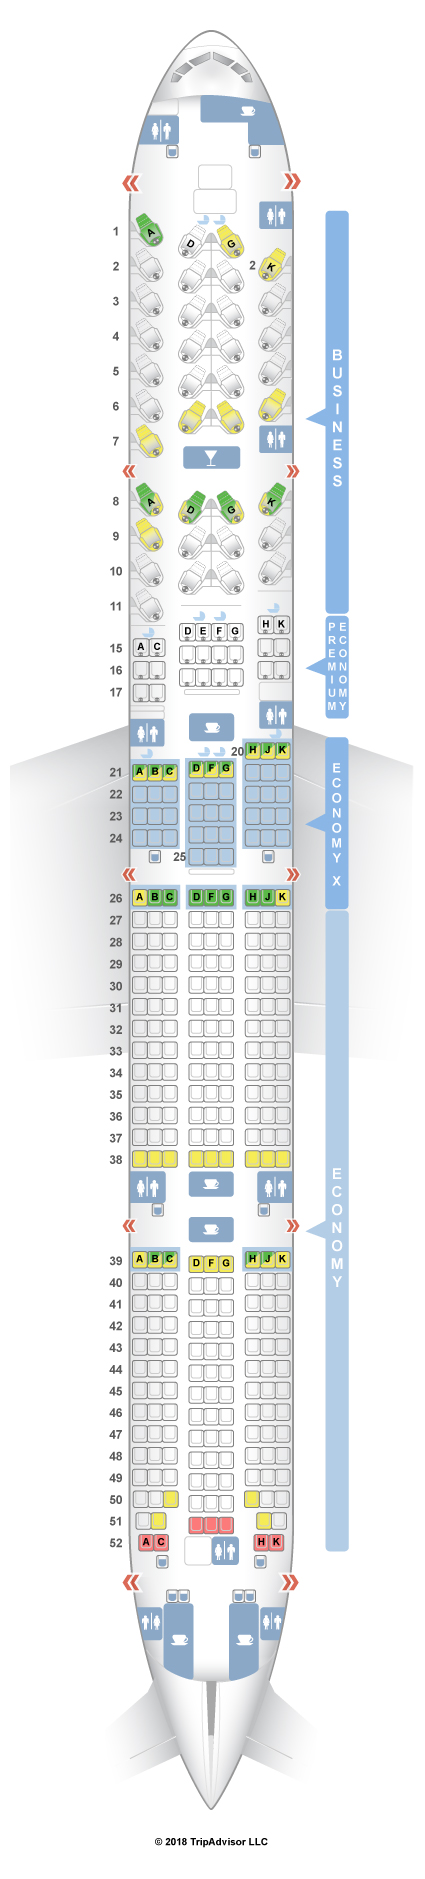 Virgin Australia 777 300er Seat Map.Virgin Australia Seat Map 777 Twitterleesclub